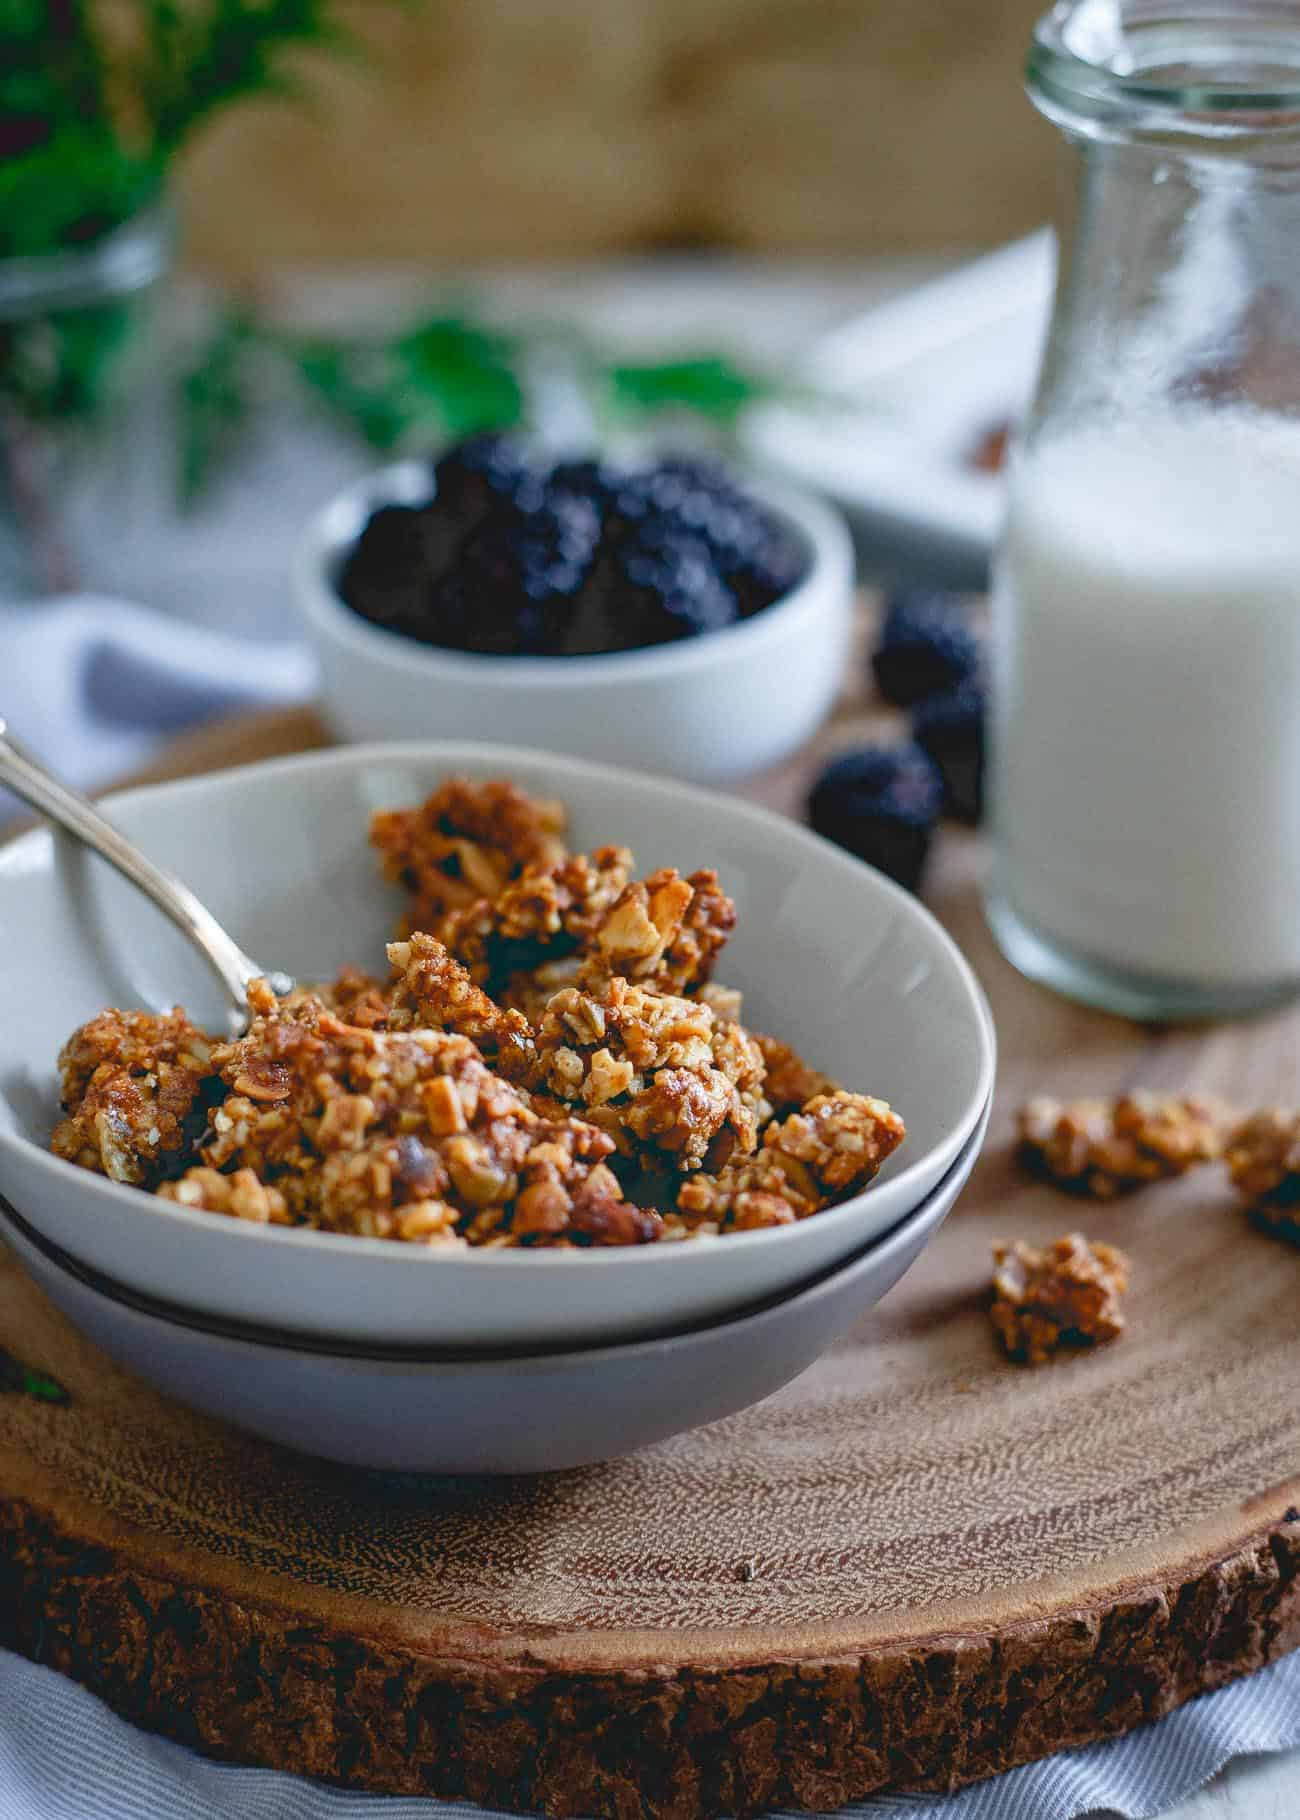 This paleo gingerbread granola is made with all the good stuff, just nuts, seeds and natural sweeteners with a wintertime twist perfect for the holidays.